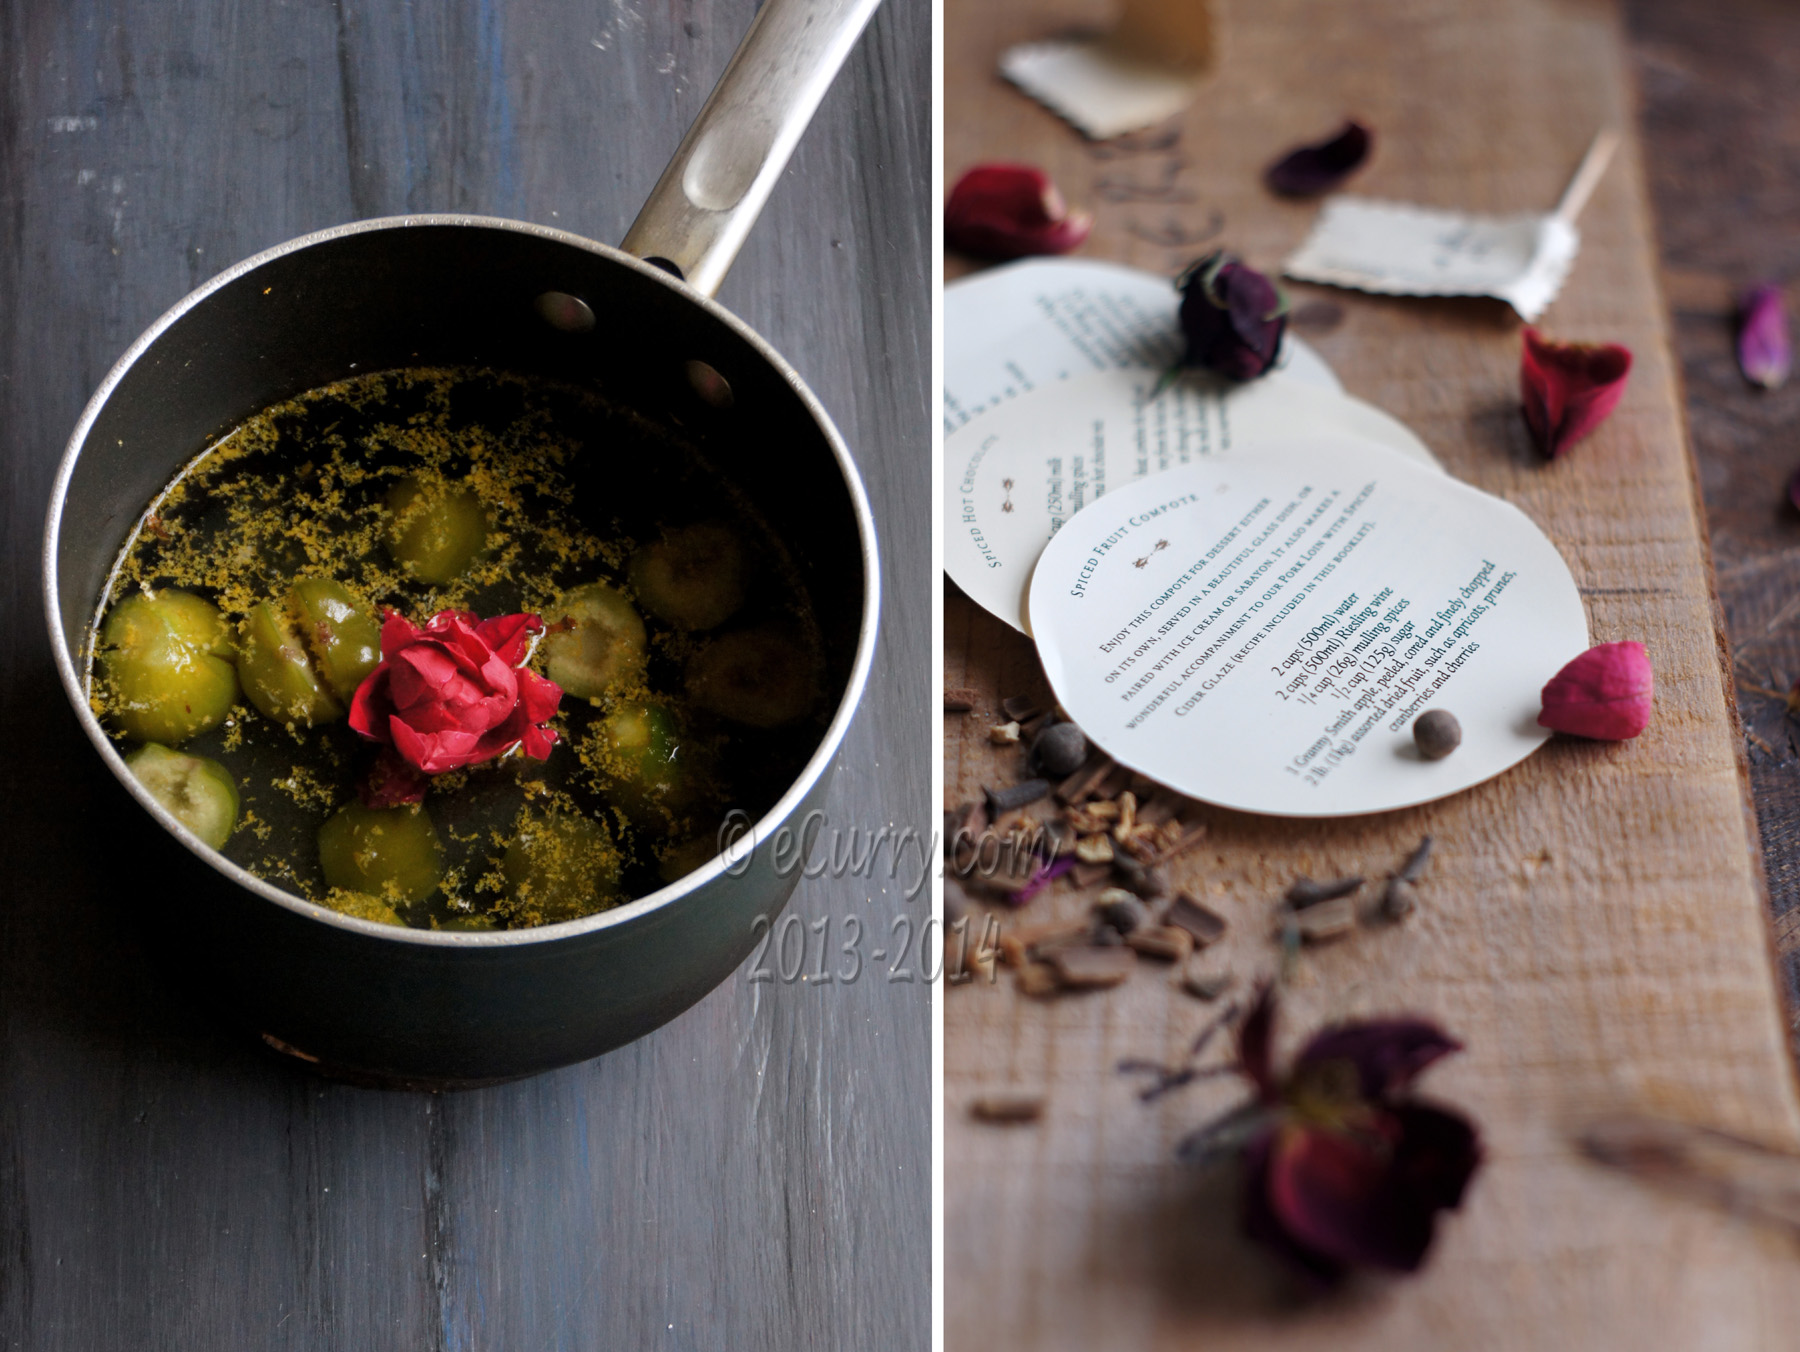 Preserved Figs with spices and rose petals diptych 1